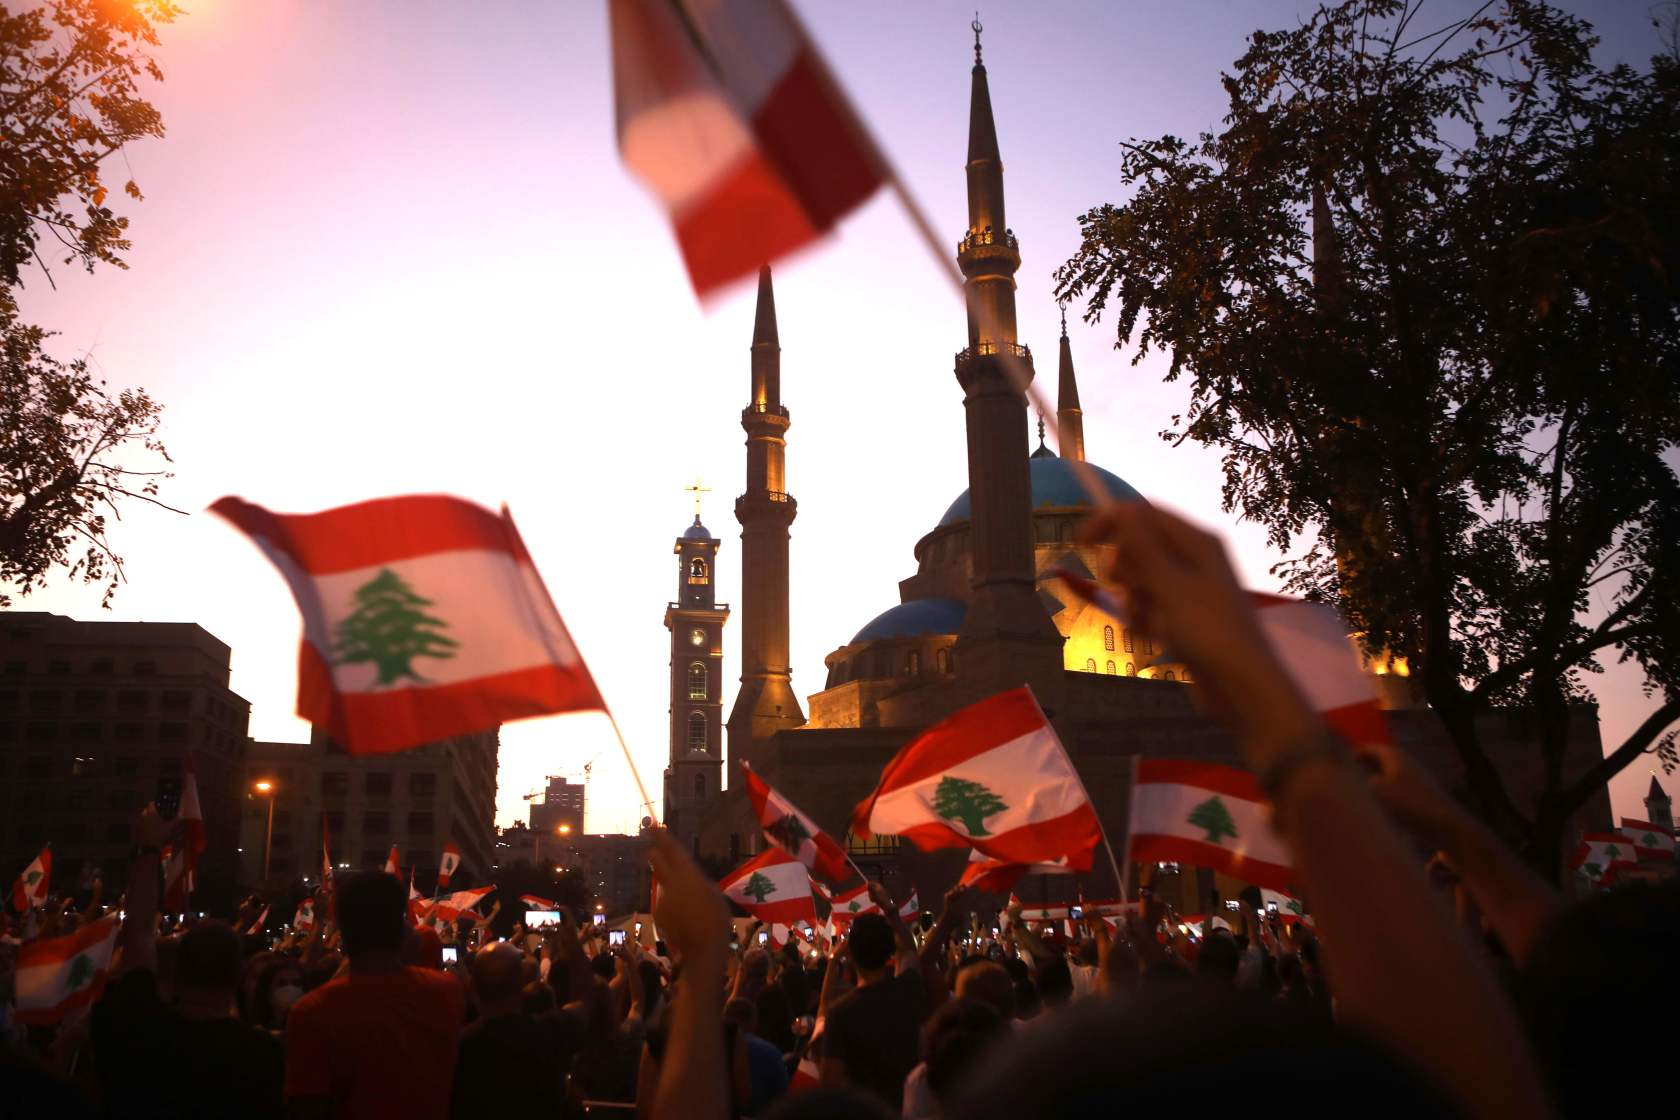 Their city lacks public spaces for protests, so Beirut residents made their own